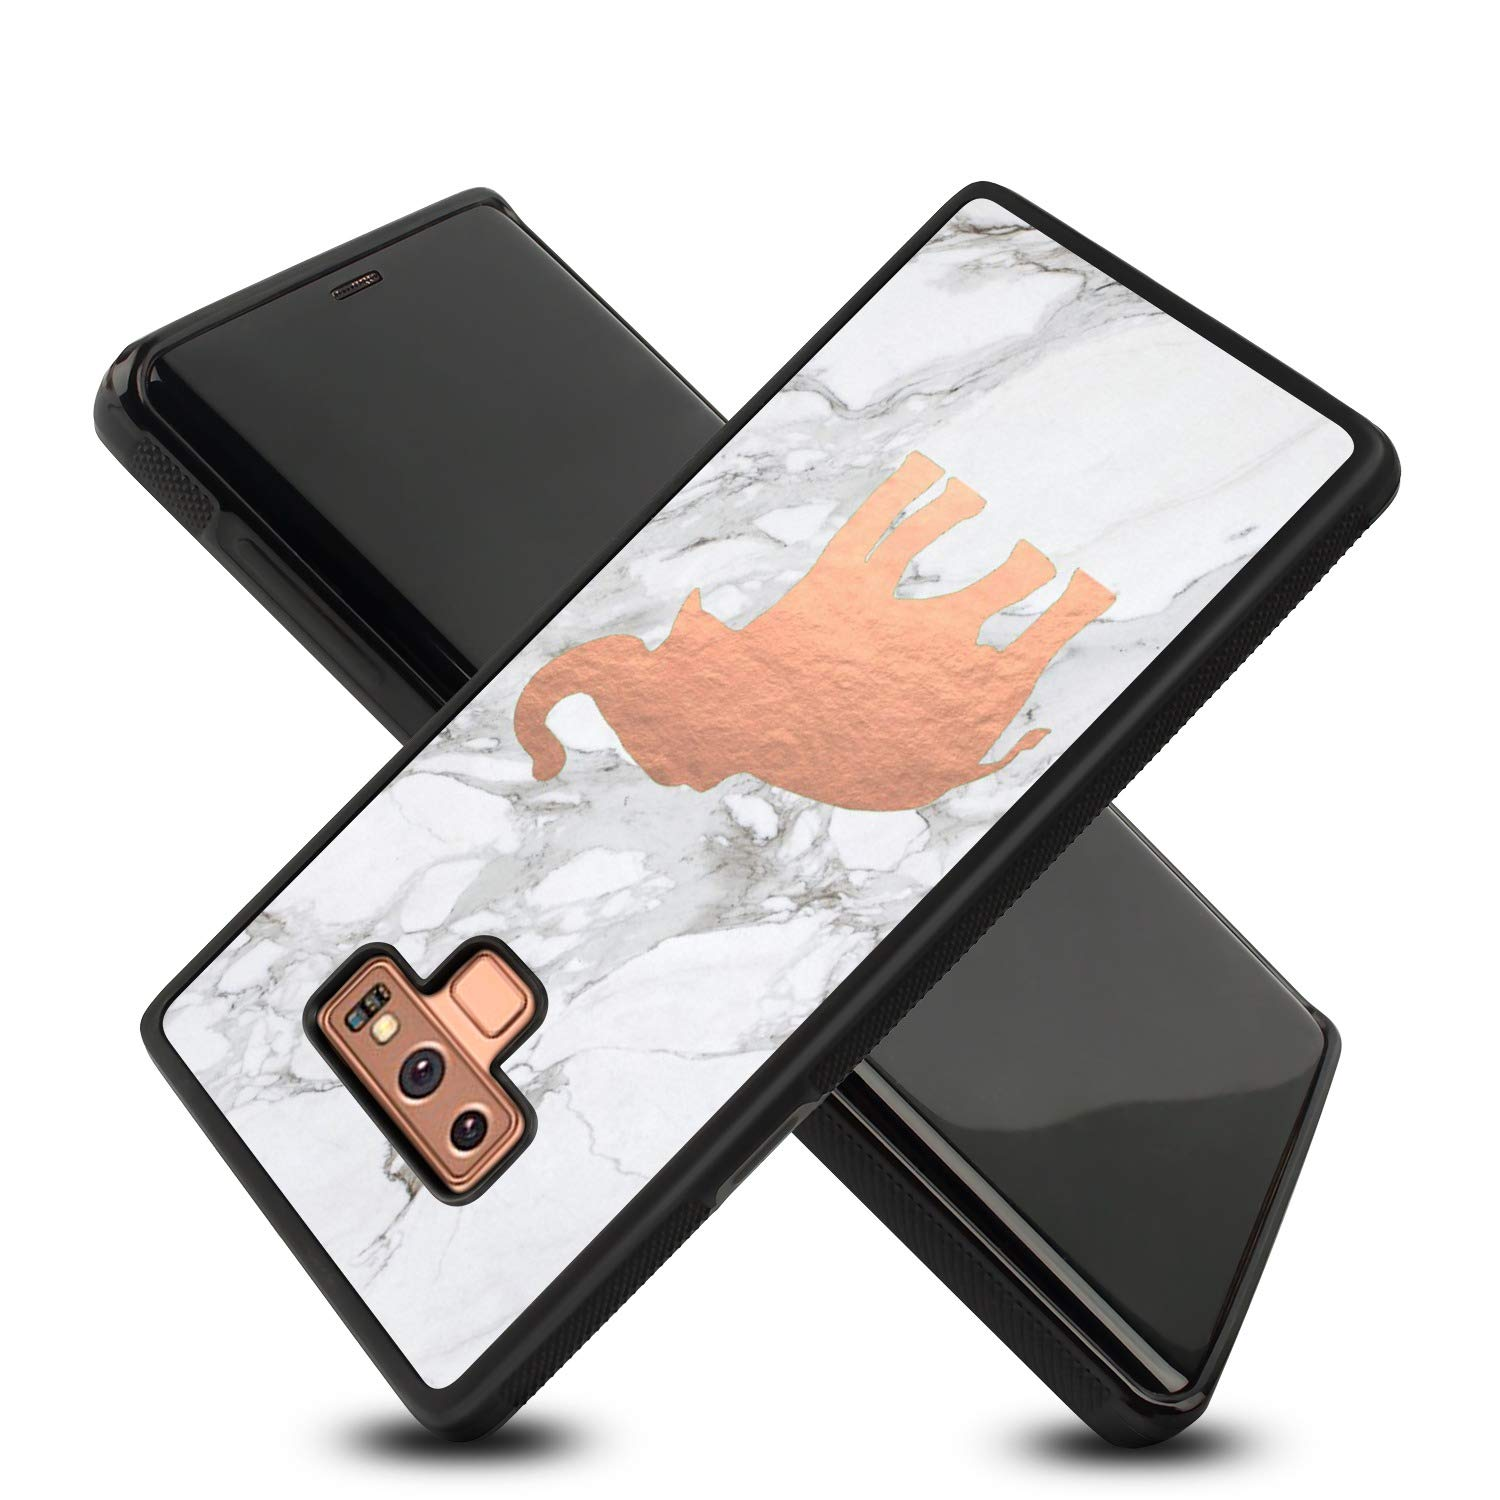 KASOS Galaxy Note 9 Case, Soft TPU and Hard PC Case Shockproof for KASOS Galaxy Note 9, Tire Tread Full Body Protective Anti-Scratch Resistant Case for Samsung Galaxy Note 9-Cute Rose Gold Elephan